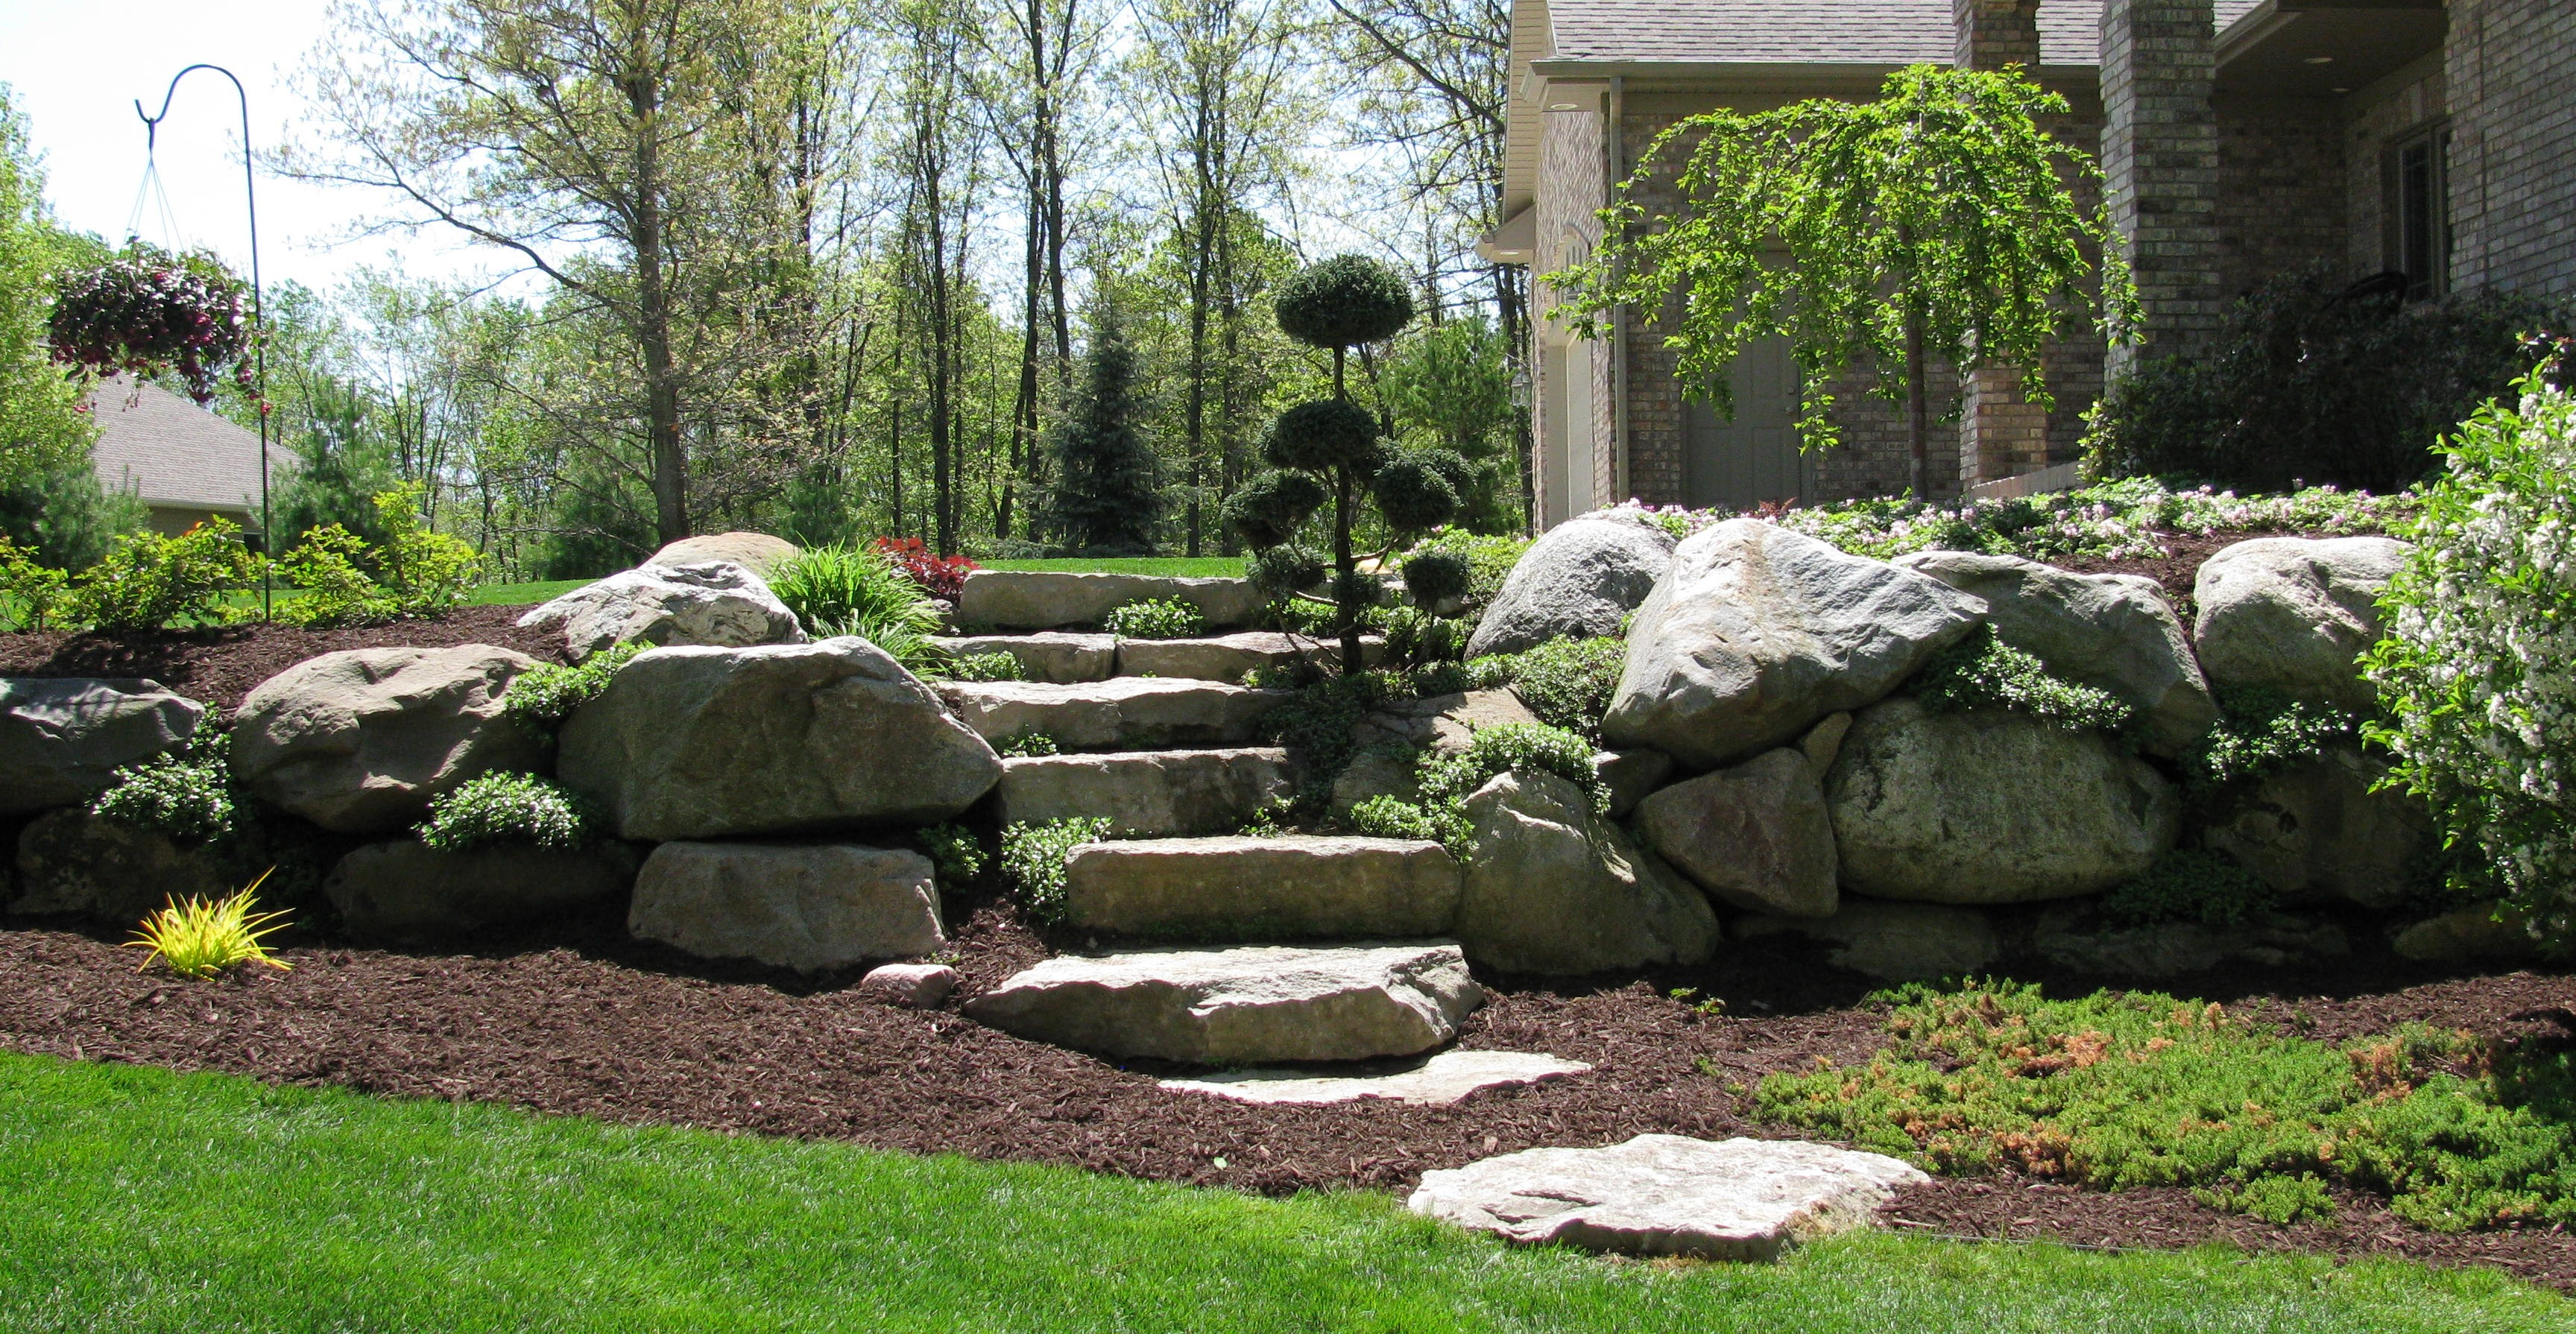 Boulder Retaining Wall With Plantings. Found On Google Images From Angieu0027s  List. This Could